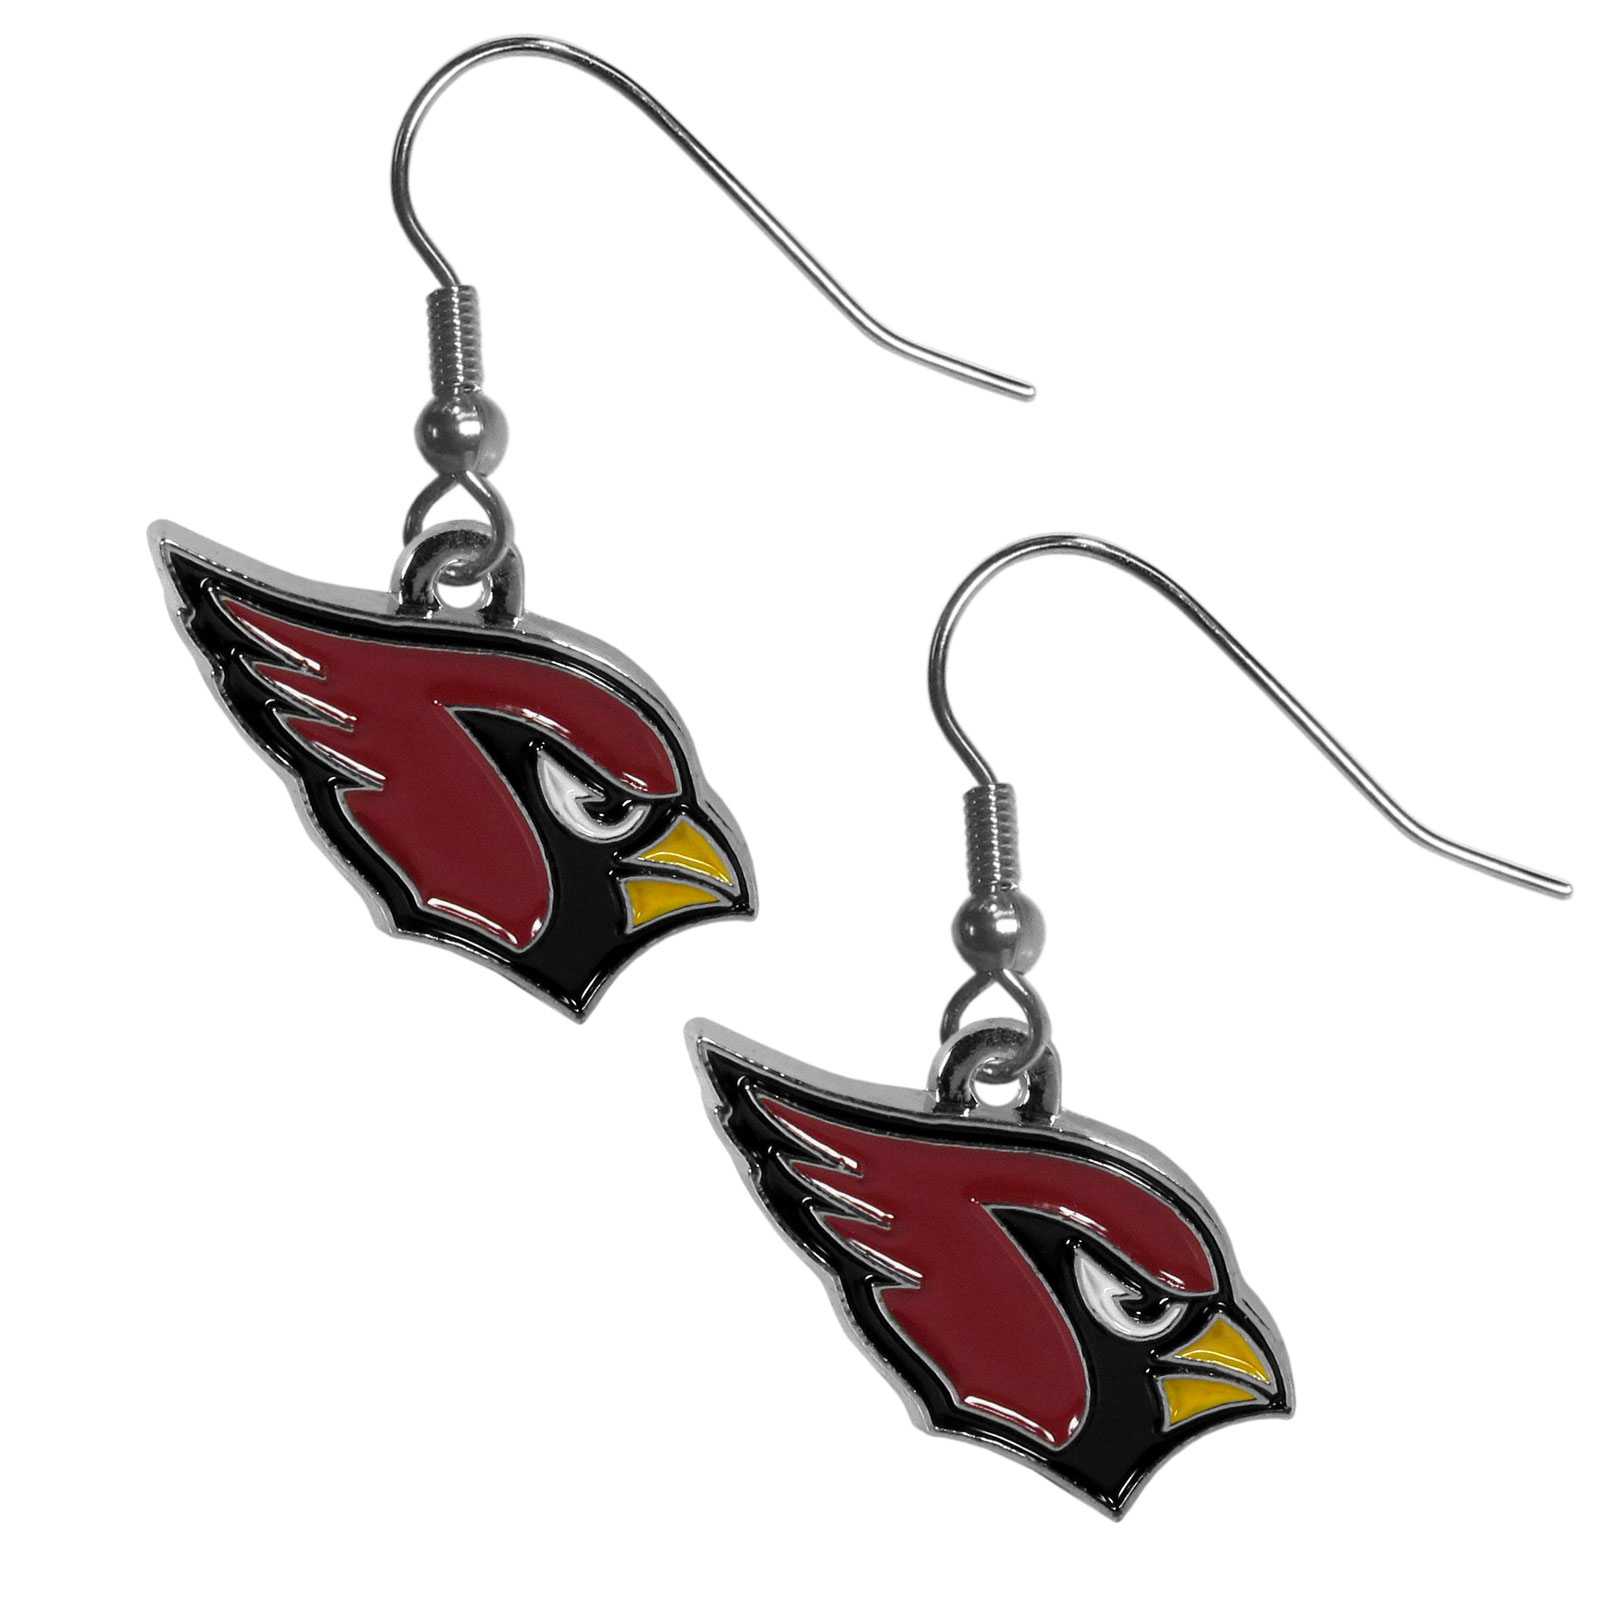 Arizona Cardinals Chrome Dangle Earrings - Officially licensed NFL Arizona Cardinals dangle earrings have fully cast Arizona Cardinals charms with exceptional detail and a hand enameled finish. The Arizona Cardinals earrings have a high polish nickel free chrome finish and hypoallergenic fishhook posts. Officially licensed NFL product Licensee: Siskiyou Buckle Thank you for visiting CrazedOutSports.com